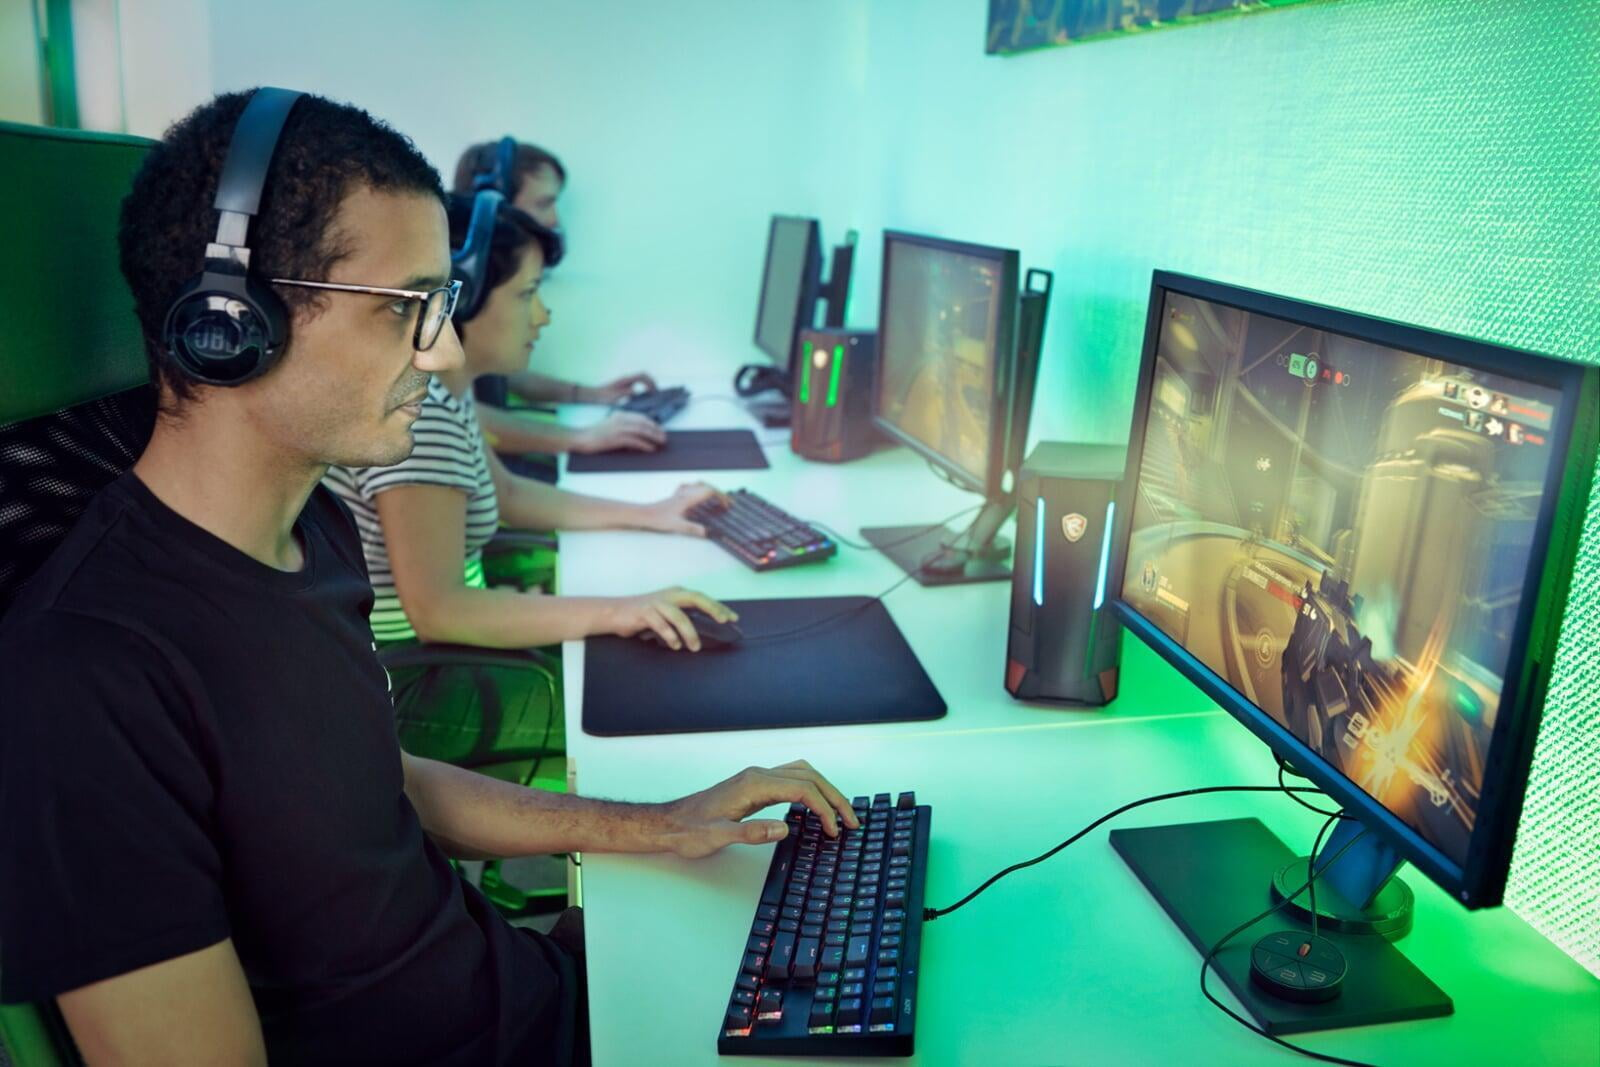 People sitting in a room gaming on computers